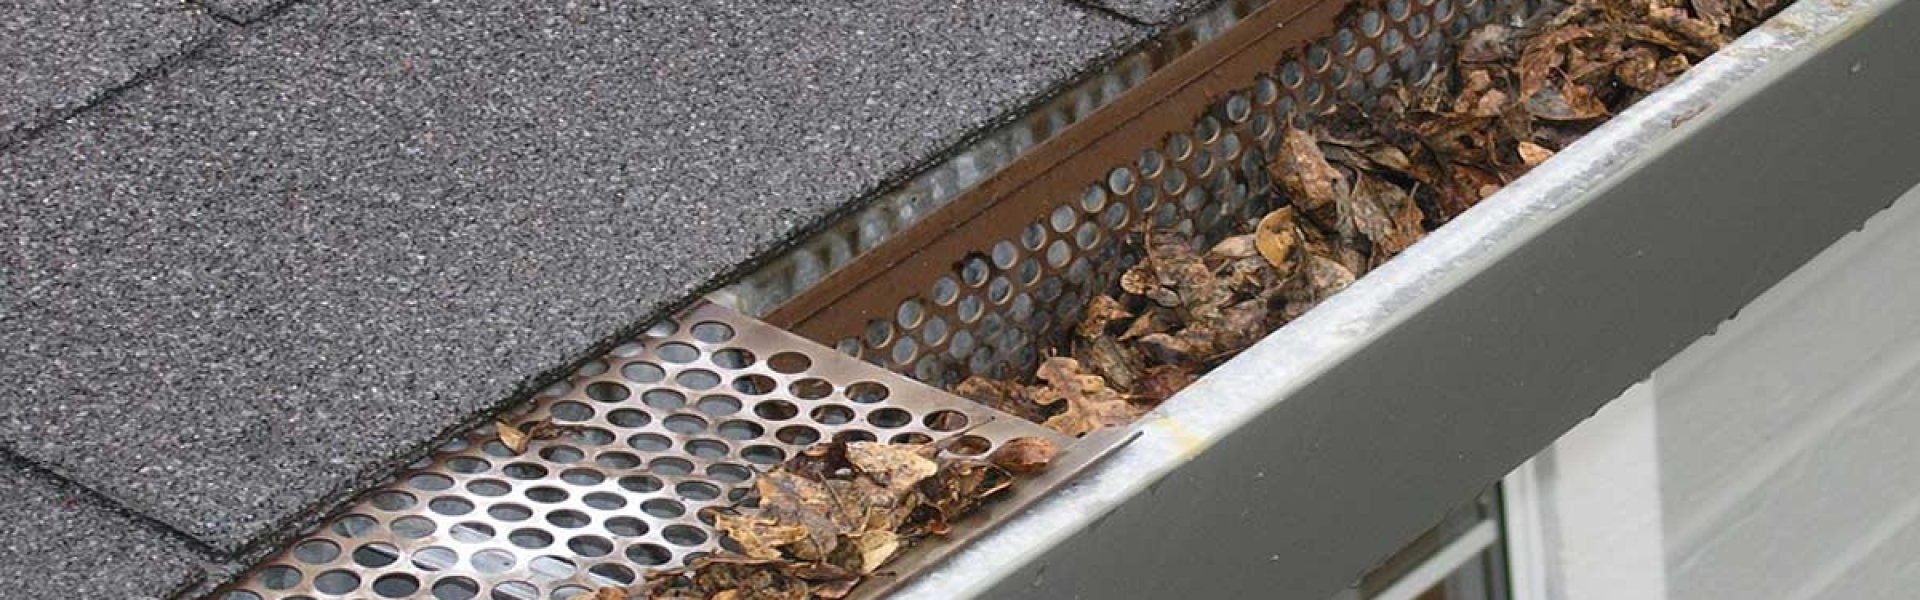 How Cleaning Gutters Prolongs The Life Of A Roof Roofing